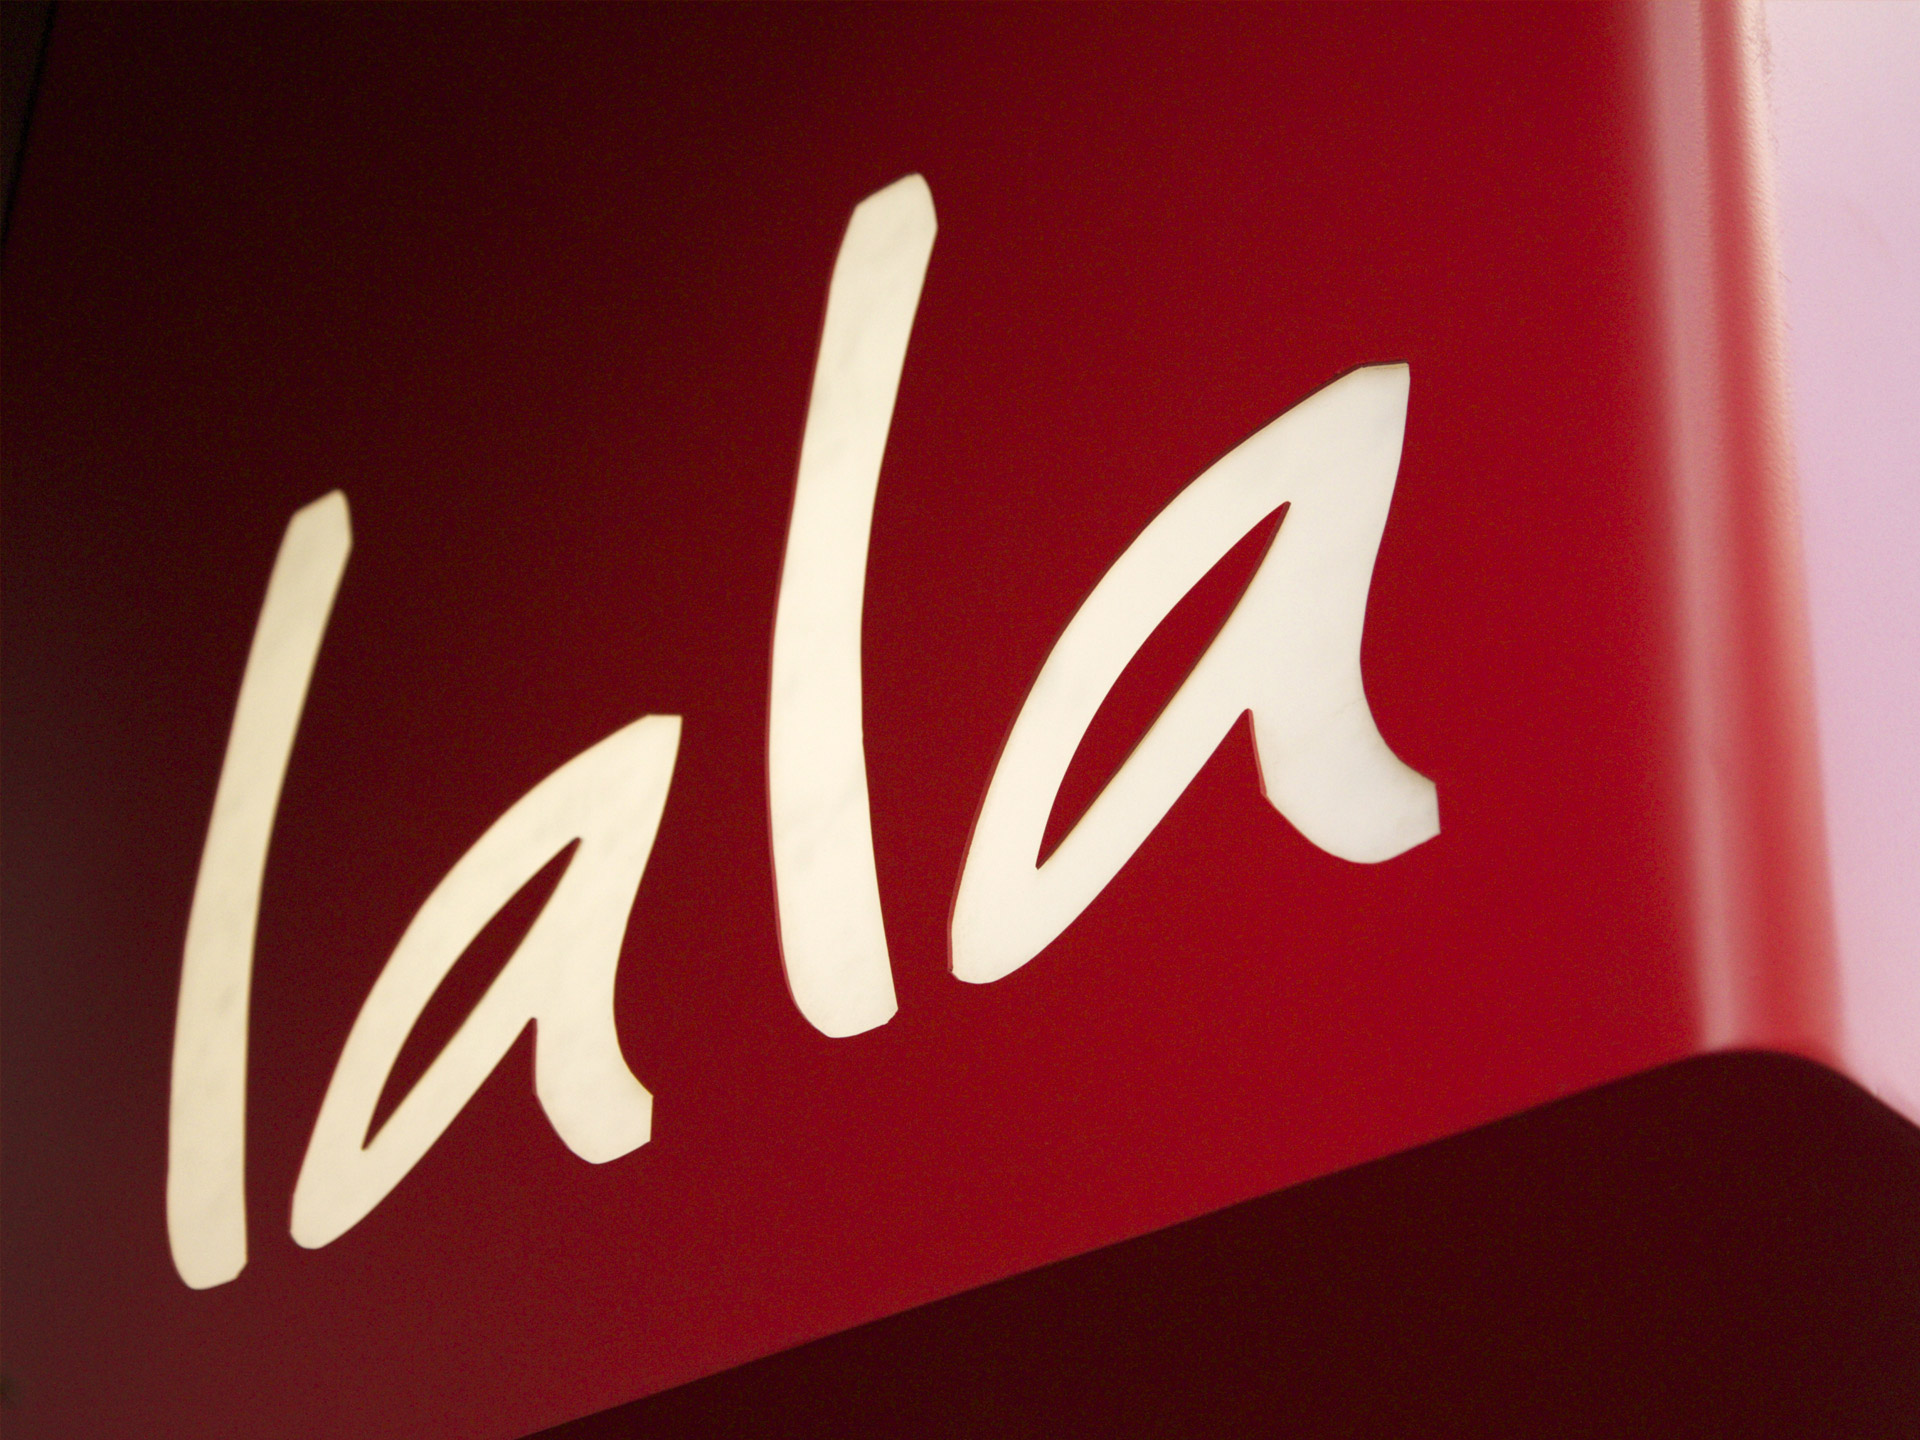 LALA identity restaurant sign